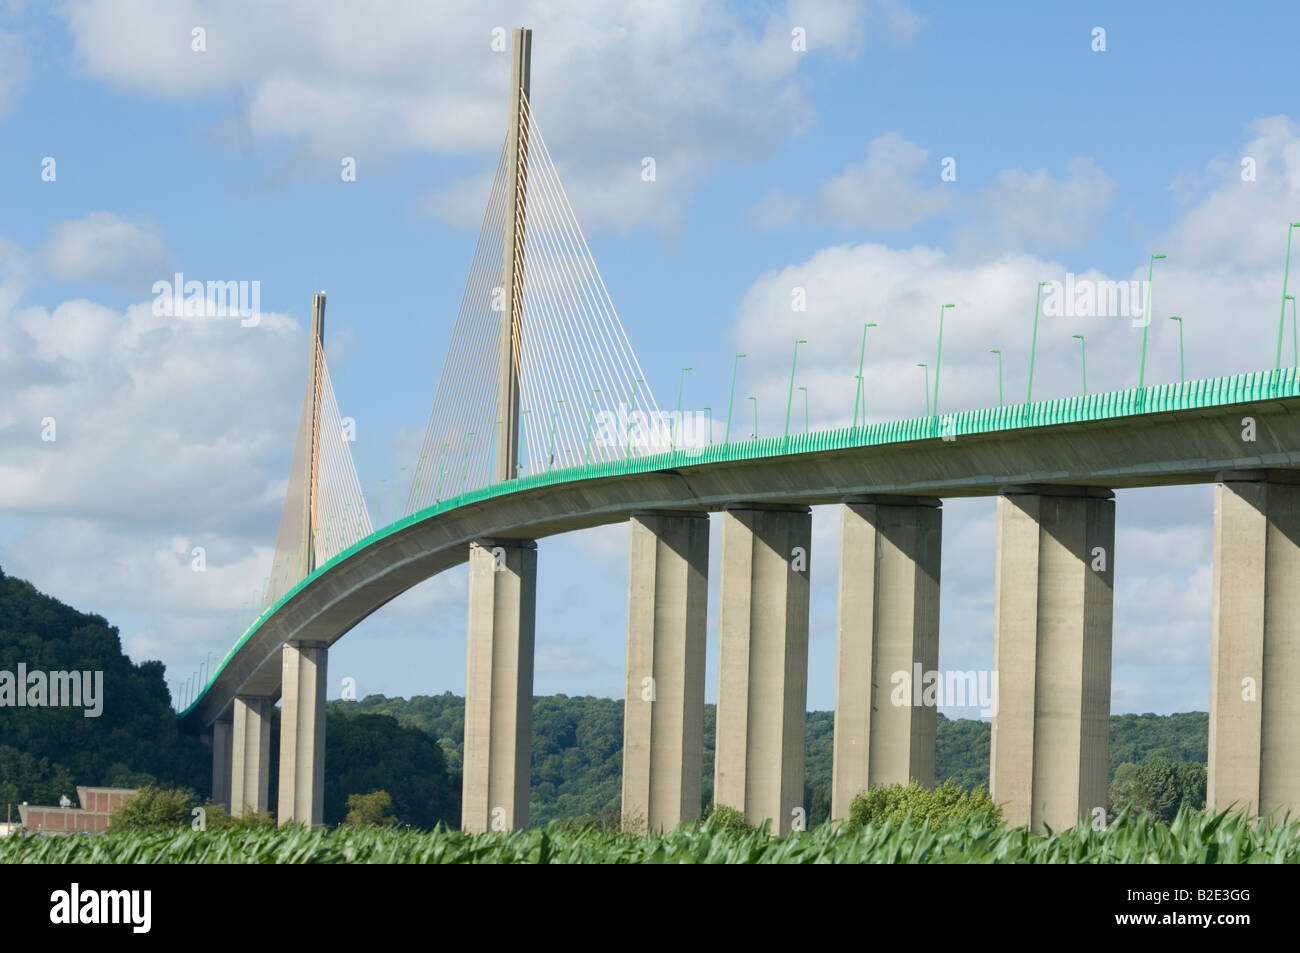 pont-de-brotonne-normandy-france-B2E3GG.